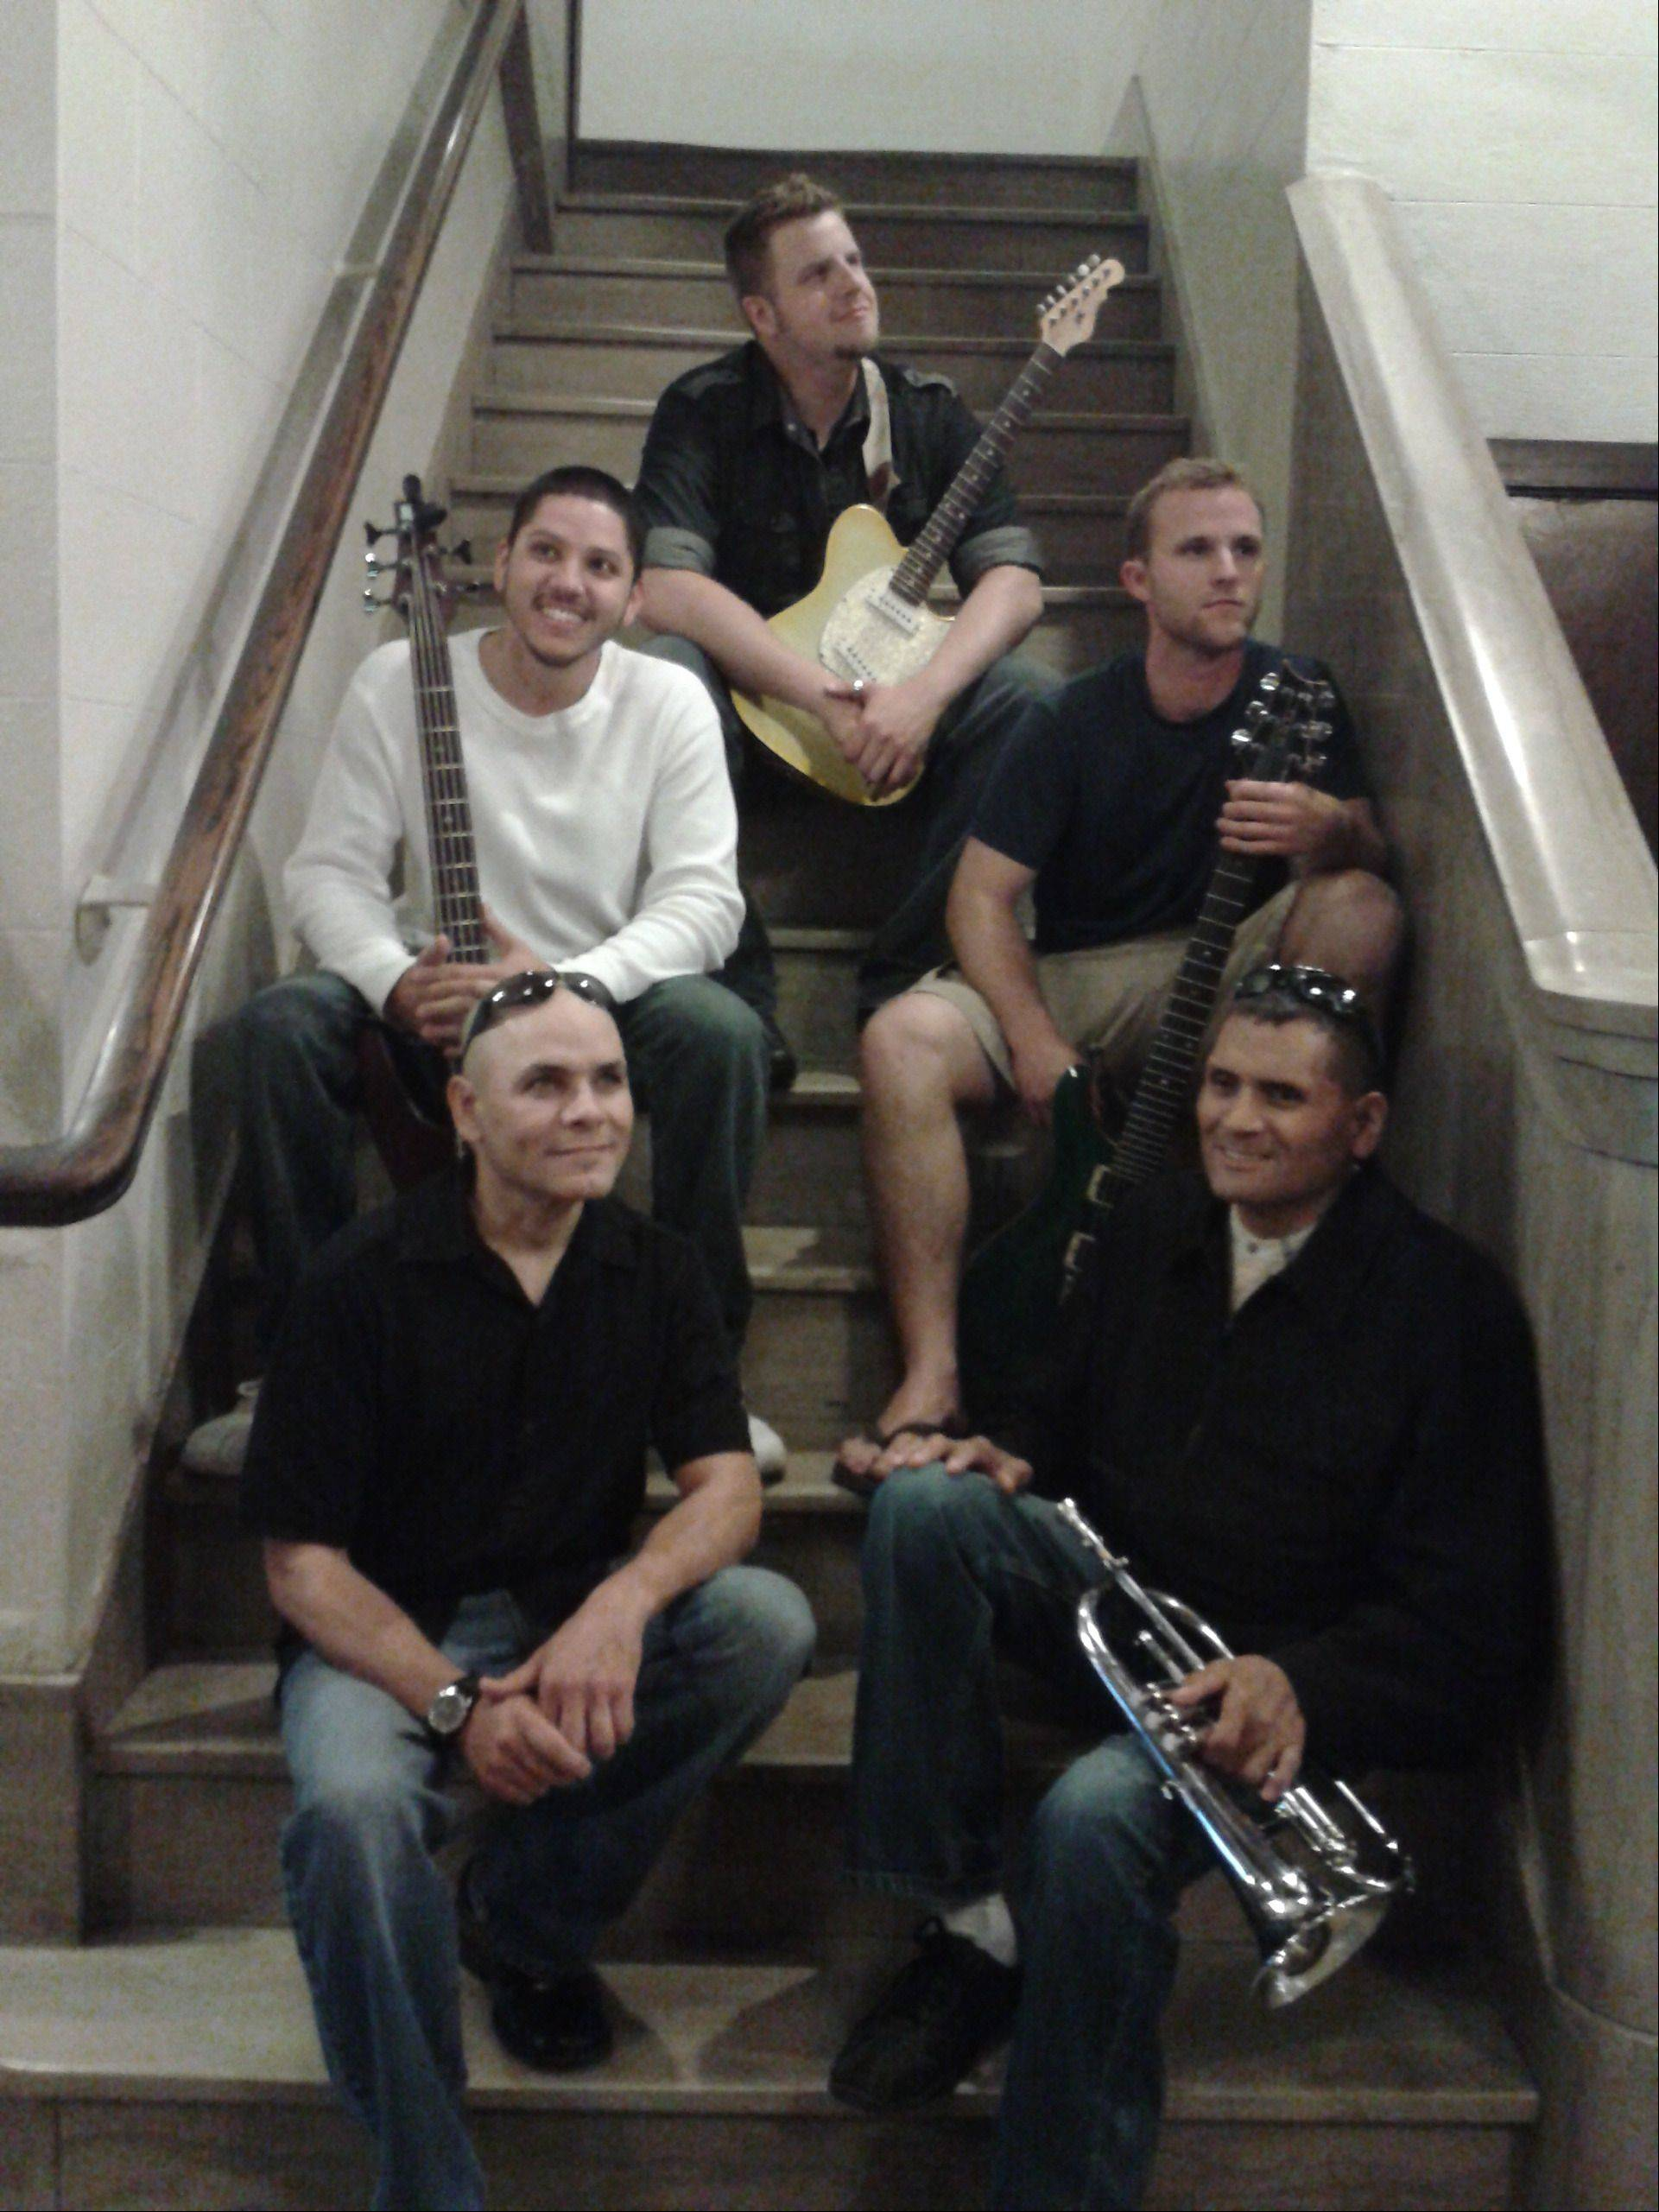 The Elgin-based band P.U.S.H. will make its live radio debut Sunday. Picture here are, bottom row, lead vocalist Oswald Mendez and keyboard and trumpet player Fred Gomez; middle row, guitarist Andrew Olson and bass player Luis Baez; and top row, guitarist Roger Alvarez. Not pictured are drummers William Rawlings and Giovanni Valdez.